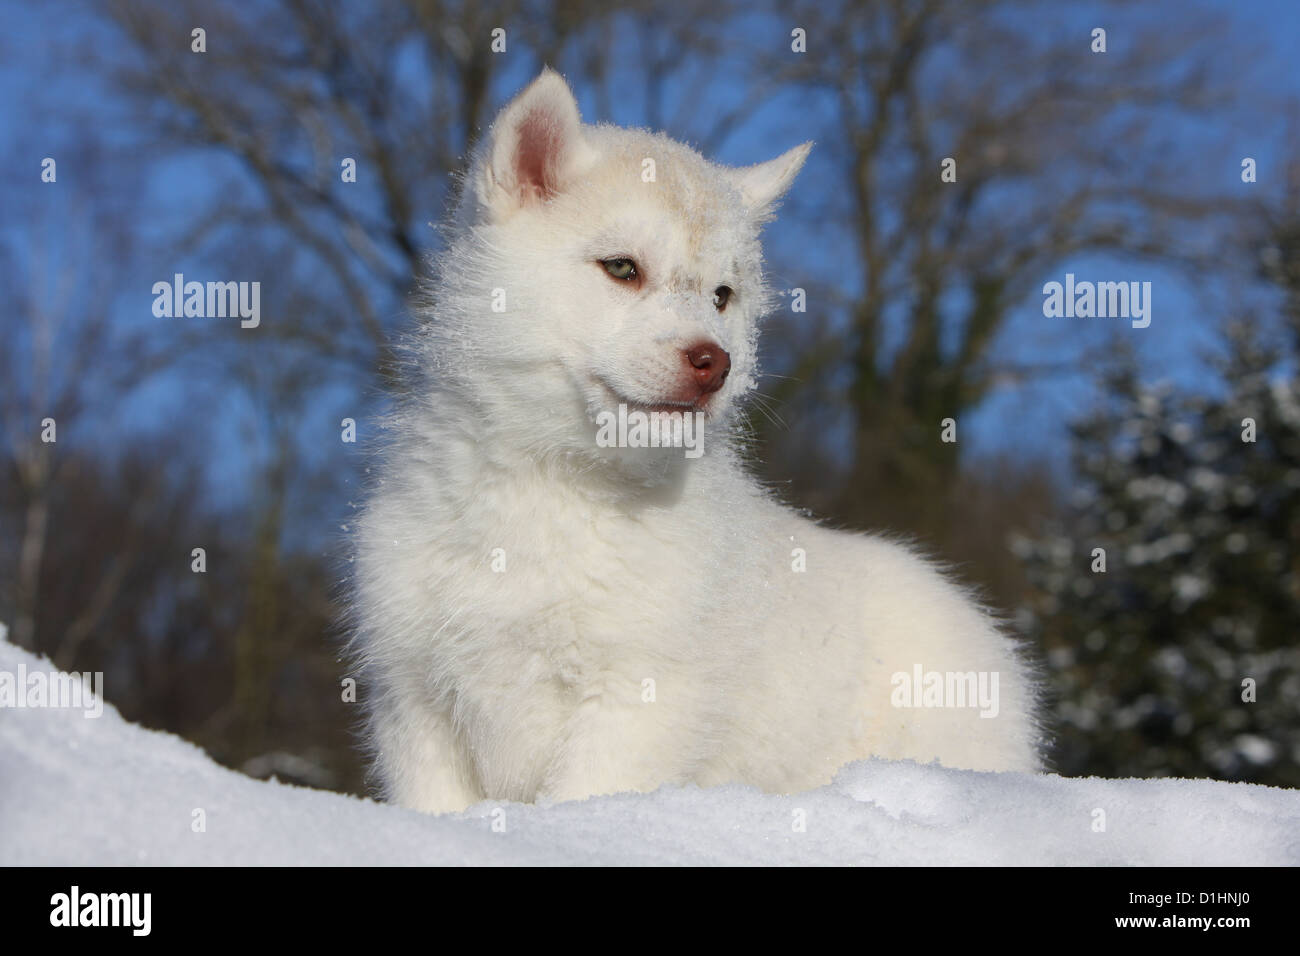 Dog Siberian Husky White Puppy Standing In Snow Stock Photo